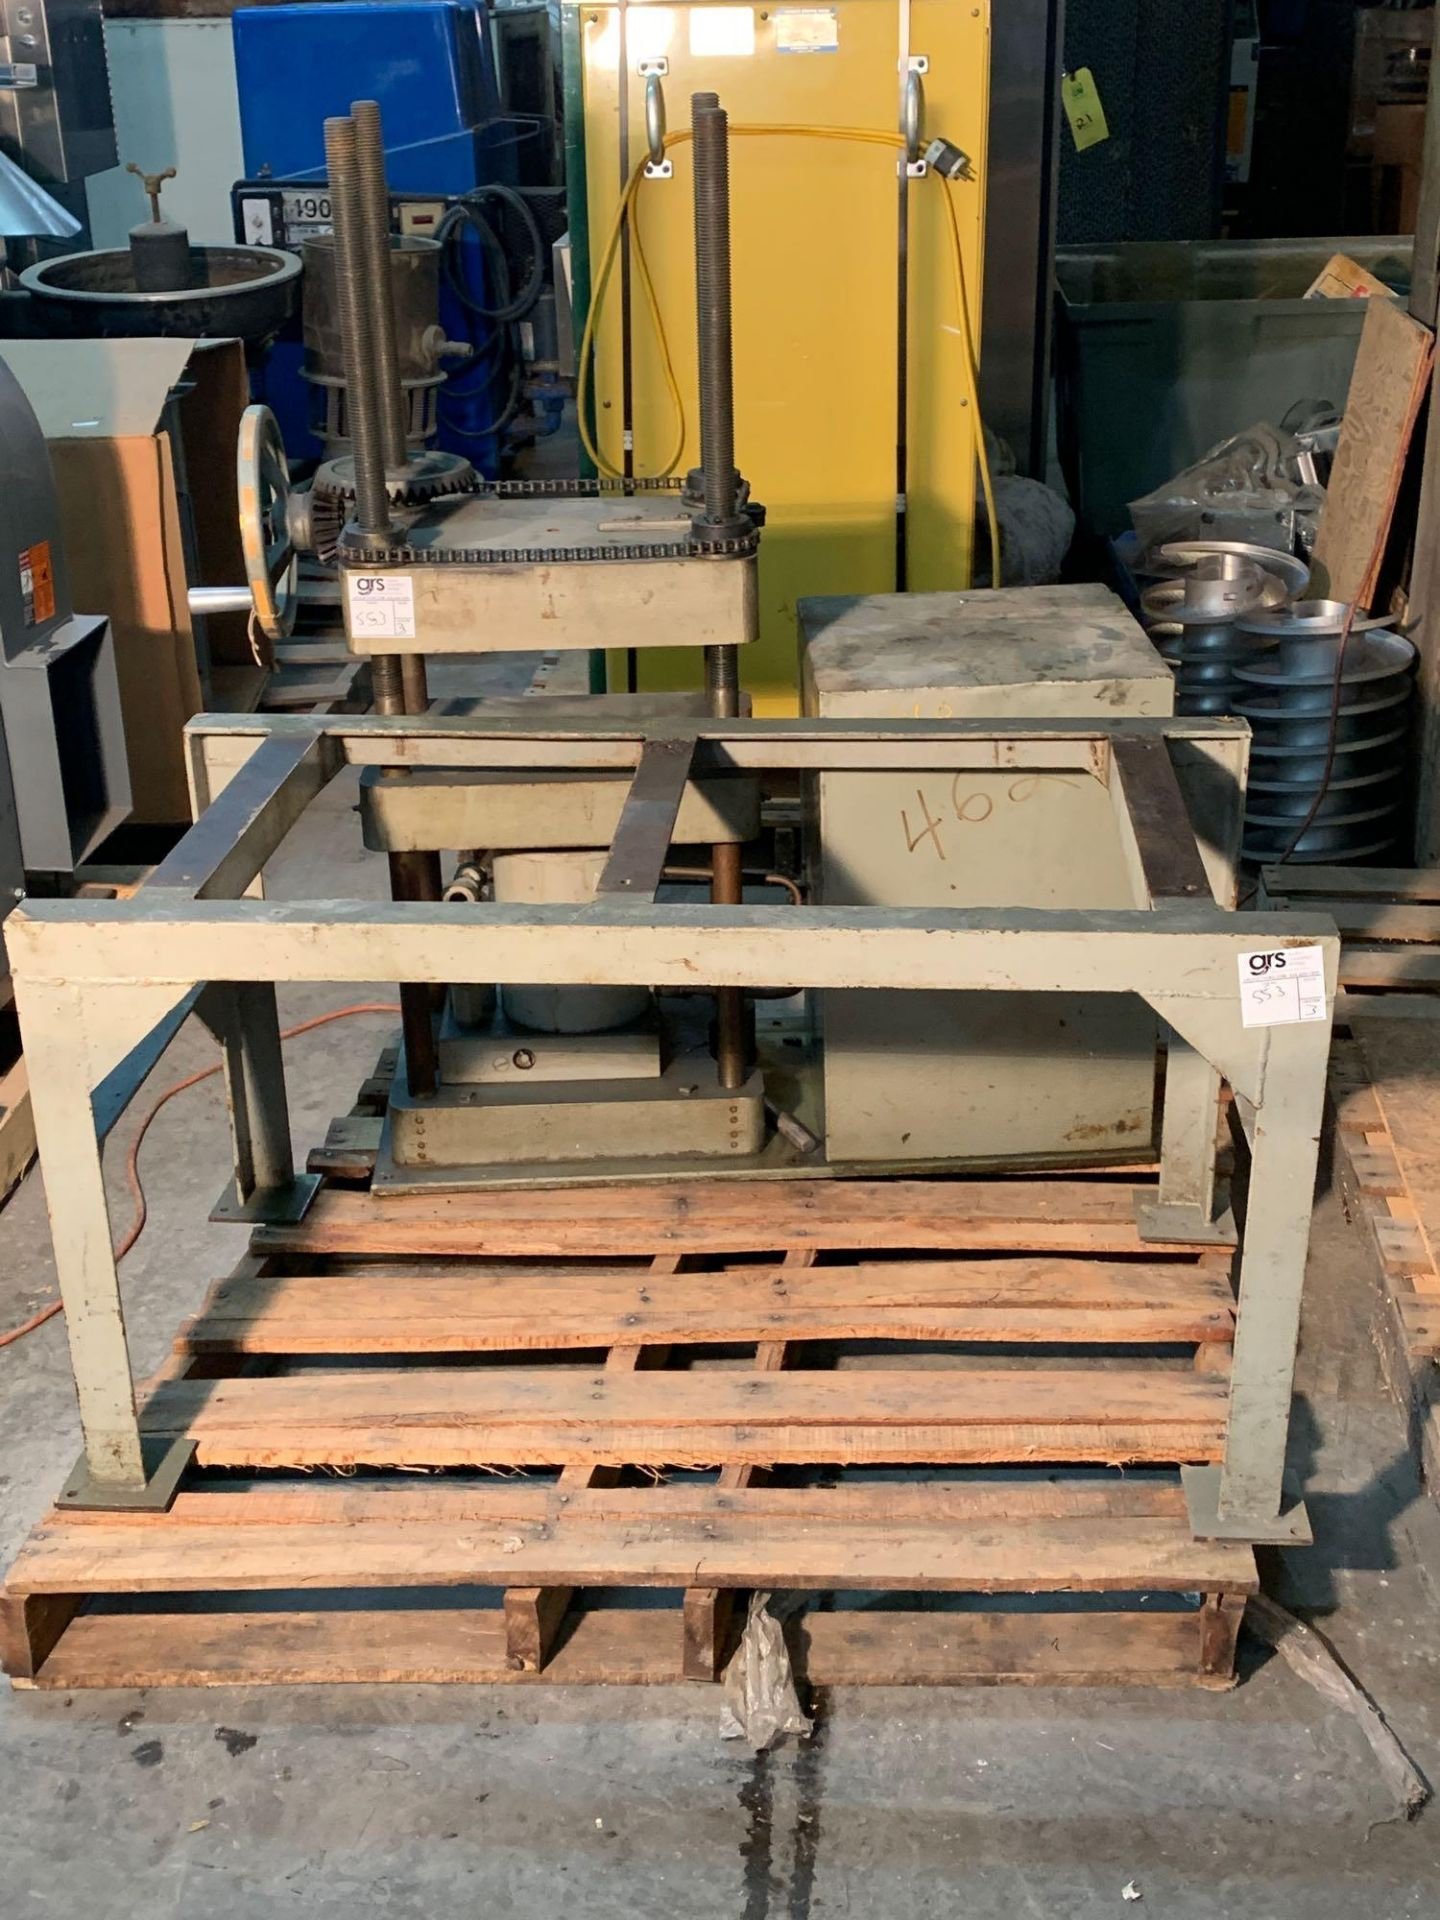 Loomis 50 Ton Hydraulic Post Press with Equipment Stand - Image 2 of 9